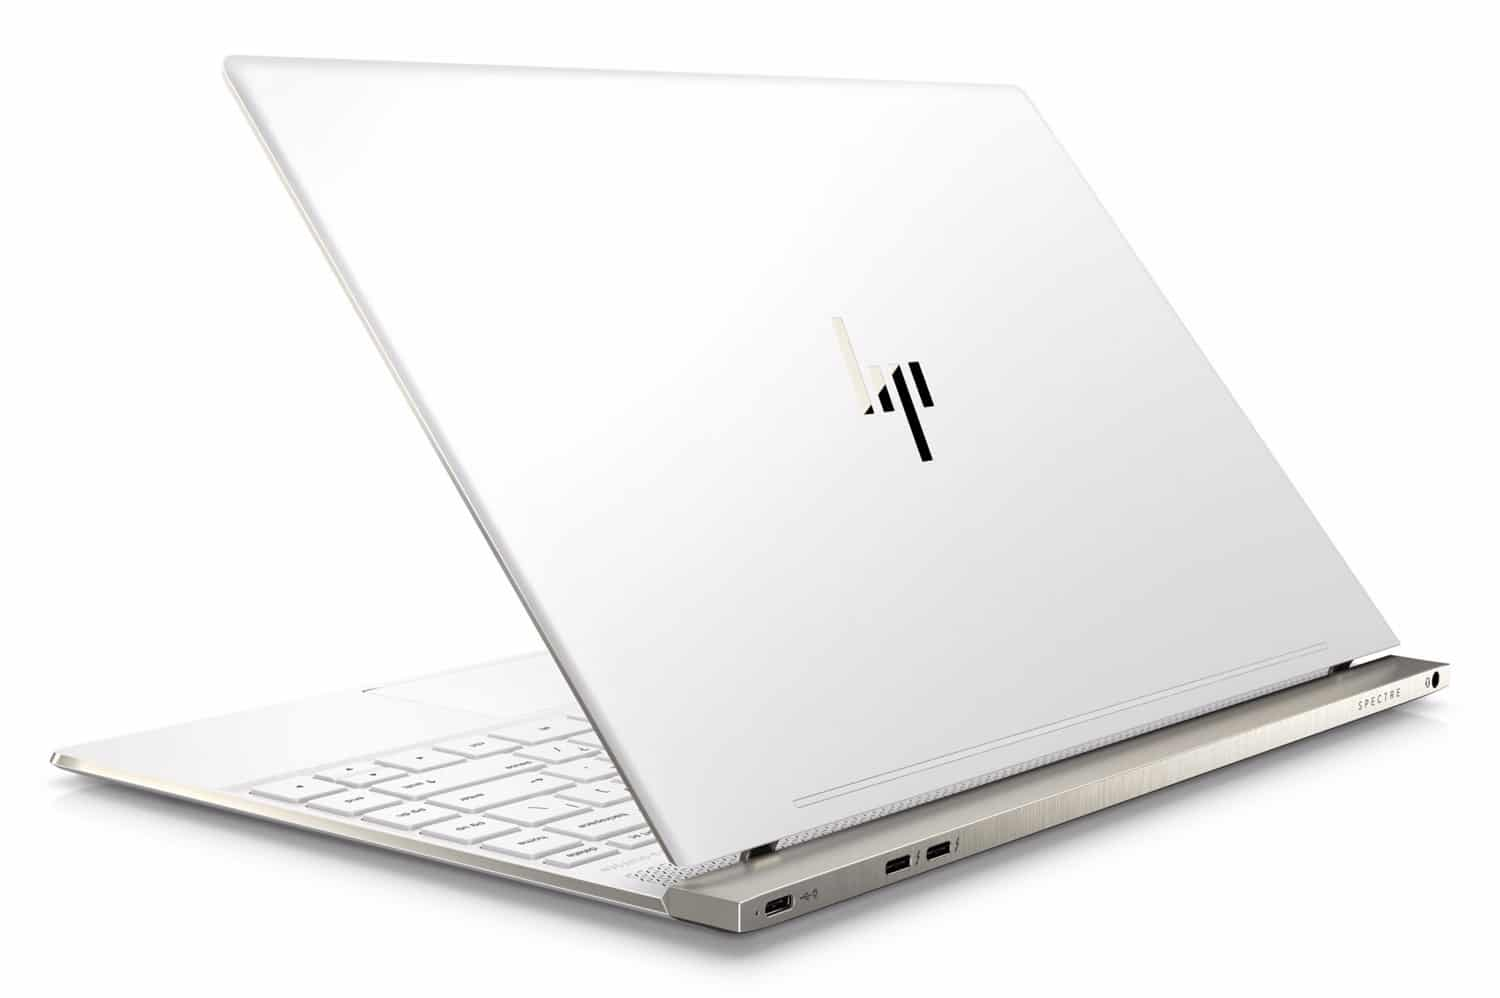 HP Spectre 13-af004nf, Ultrabook IPS tactile 13 pouces SSD Kaby Refresh 1499€